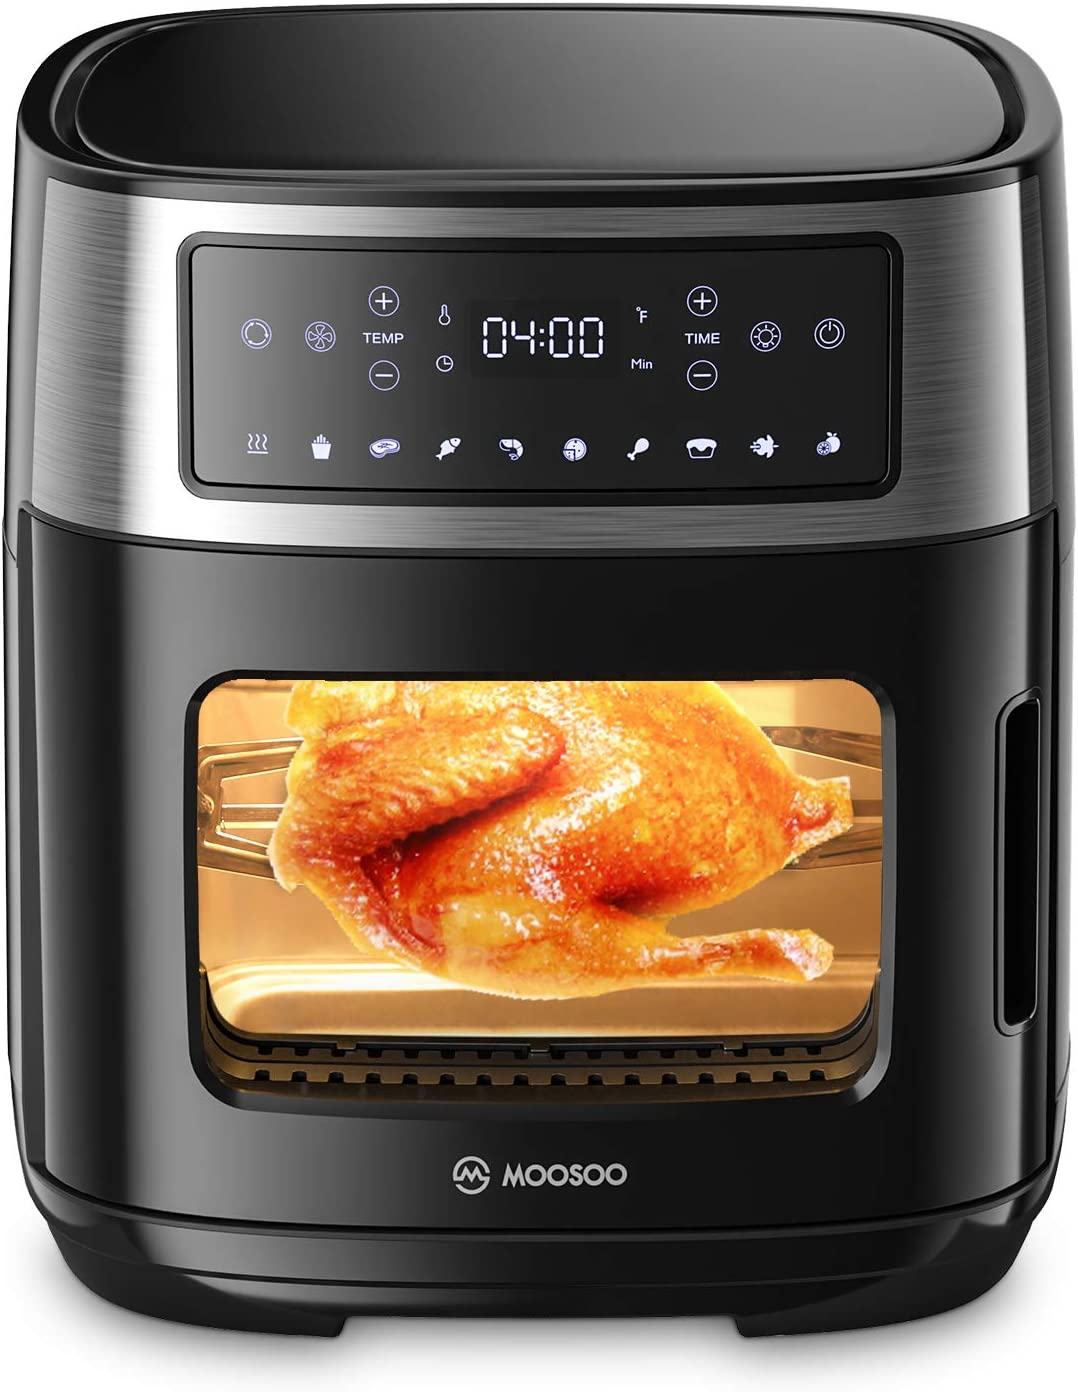 MOOSOO 12.6 Quart Air Fryer Oven, 10-in-1 Combo Convection Roaster with Double Glass Window, Digital Screen with Time/Temp Control, 1600W Air Fryer Toaster Oven with Auto Shutoff & Overheat Protection